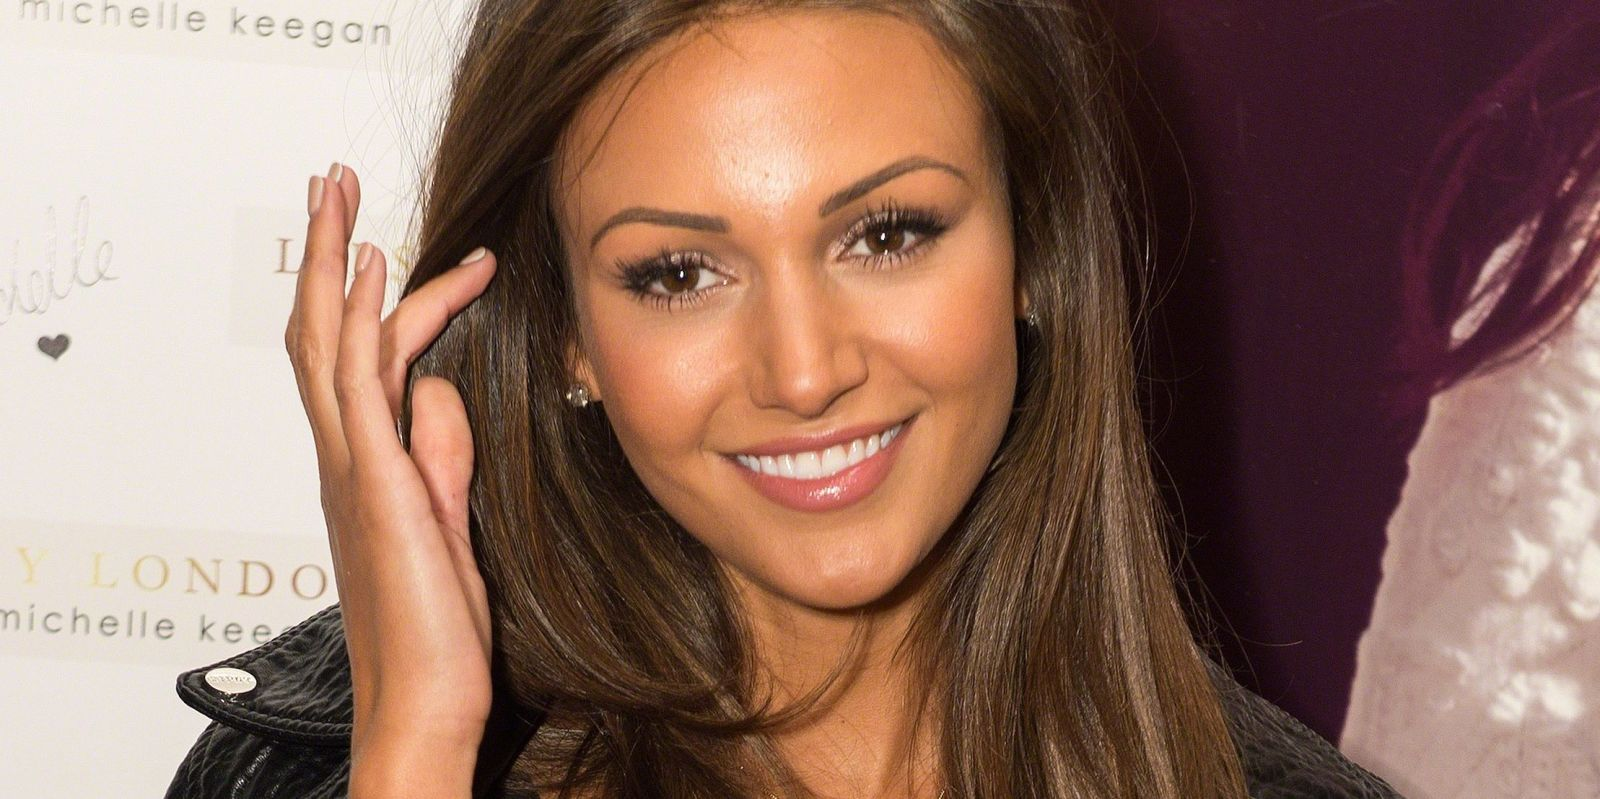 Michelle Keegan S Makeup Artist Shares Her Skincare Tips And Products